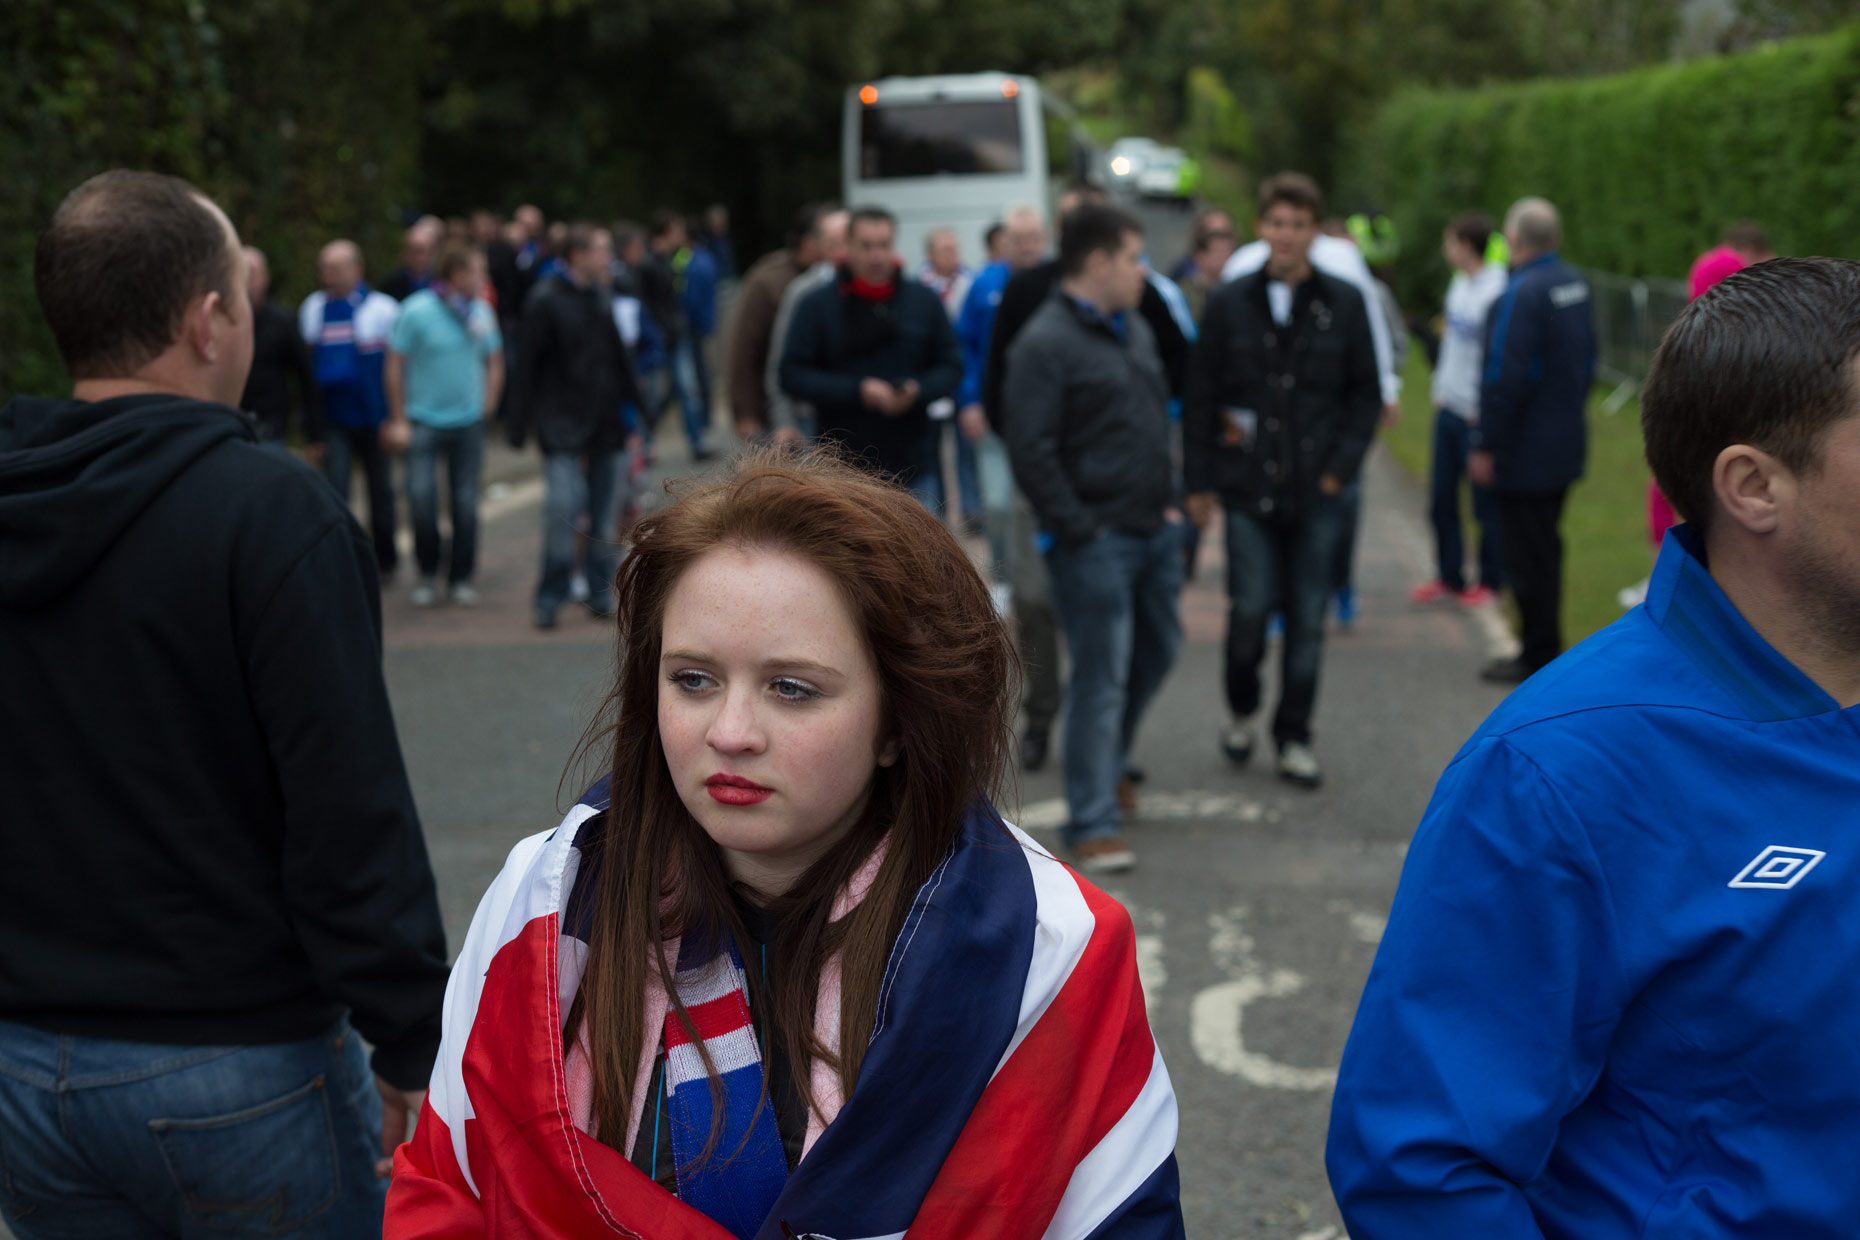 Rangers football fans in Annan, Scotland, by photographer Sutton-Hibbert